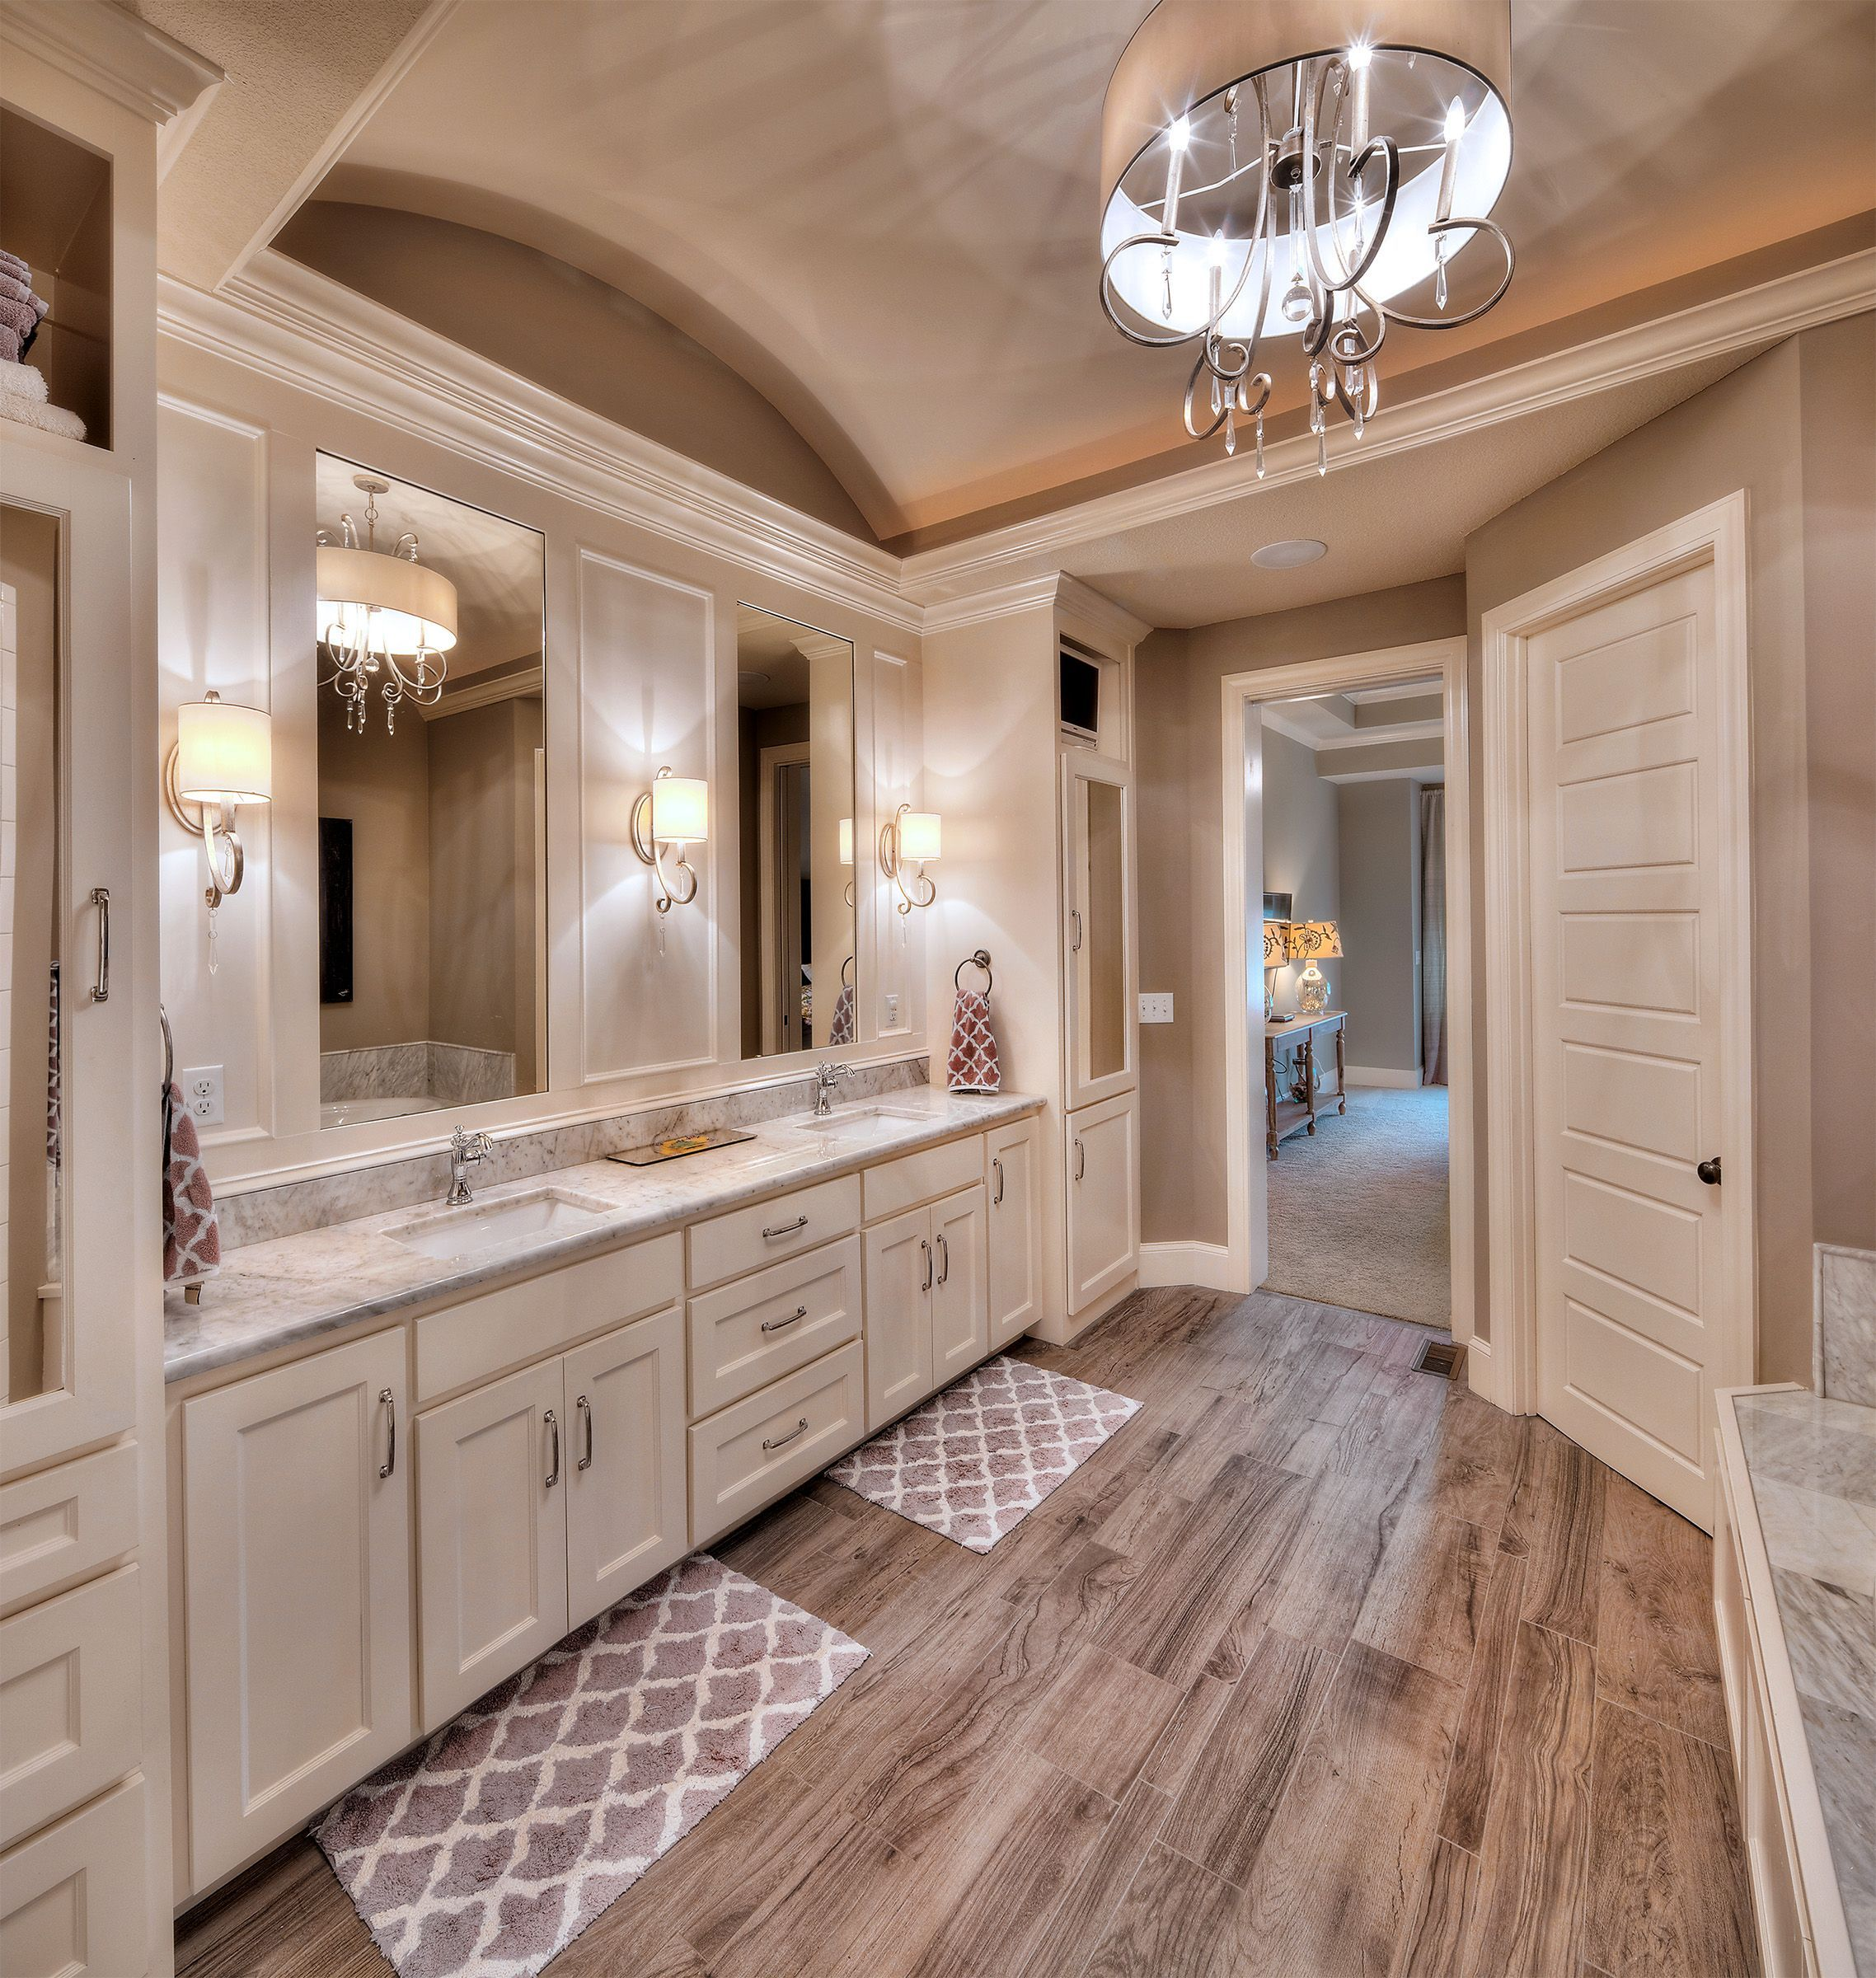 Master Bathroom His And Her Sink Home Pinterest Master Bathrooms Sinks And House Bathroom Remodel Master Master Bathroom Design Dream Bathrooms